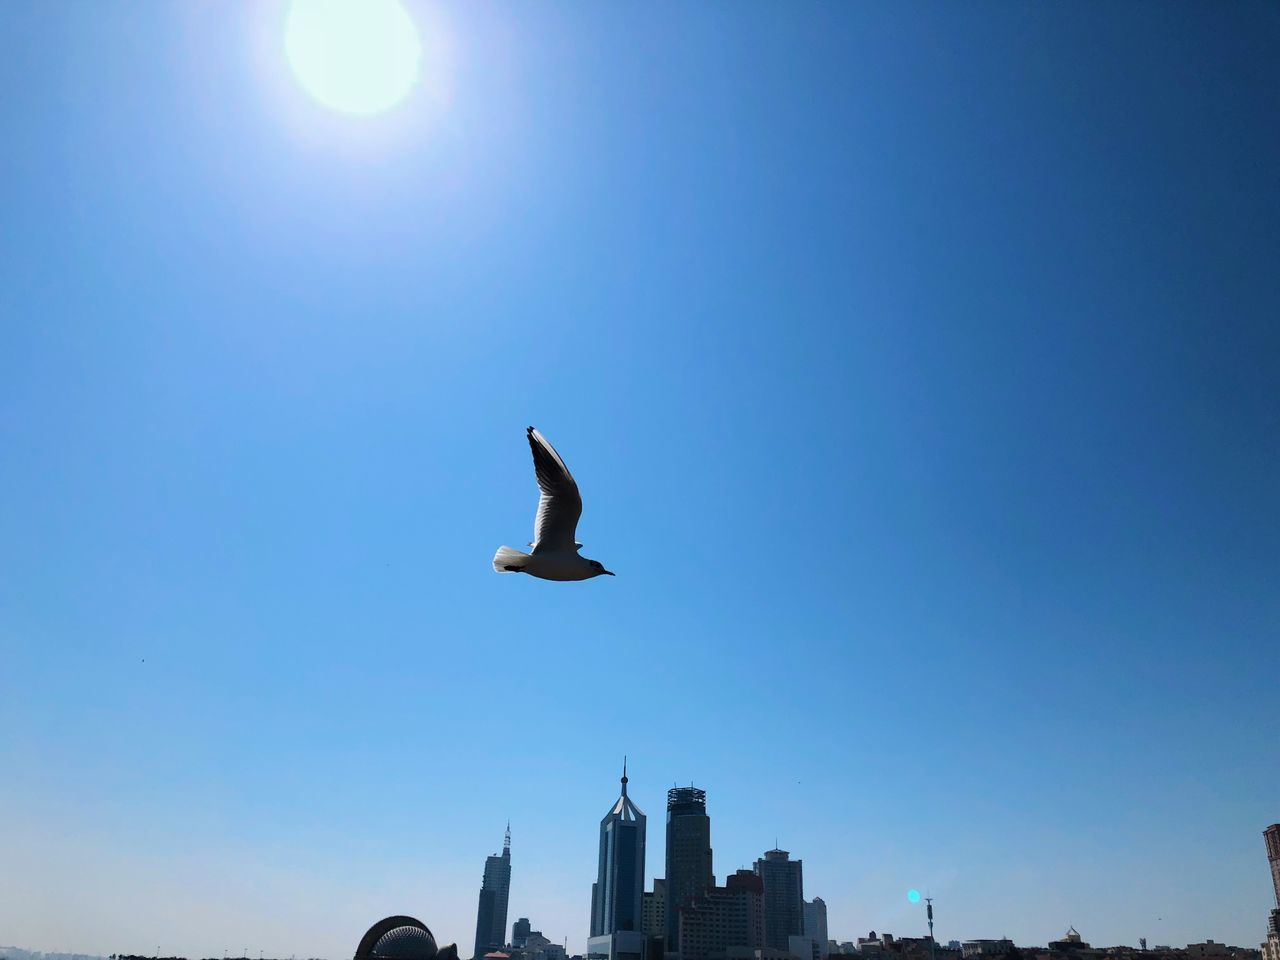 bird, animals in the wild, vertebrate, animal wildlife, sky, flying, animal themes, animal, architecture, built structure, spread wings, low angle view, building exterior, mid-air, blue, one animal, clear sky, nature, sunlight, no people, sun, seagull, outdoors, office building exterior, skyscraper